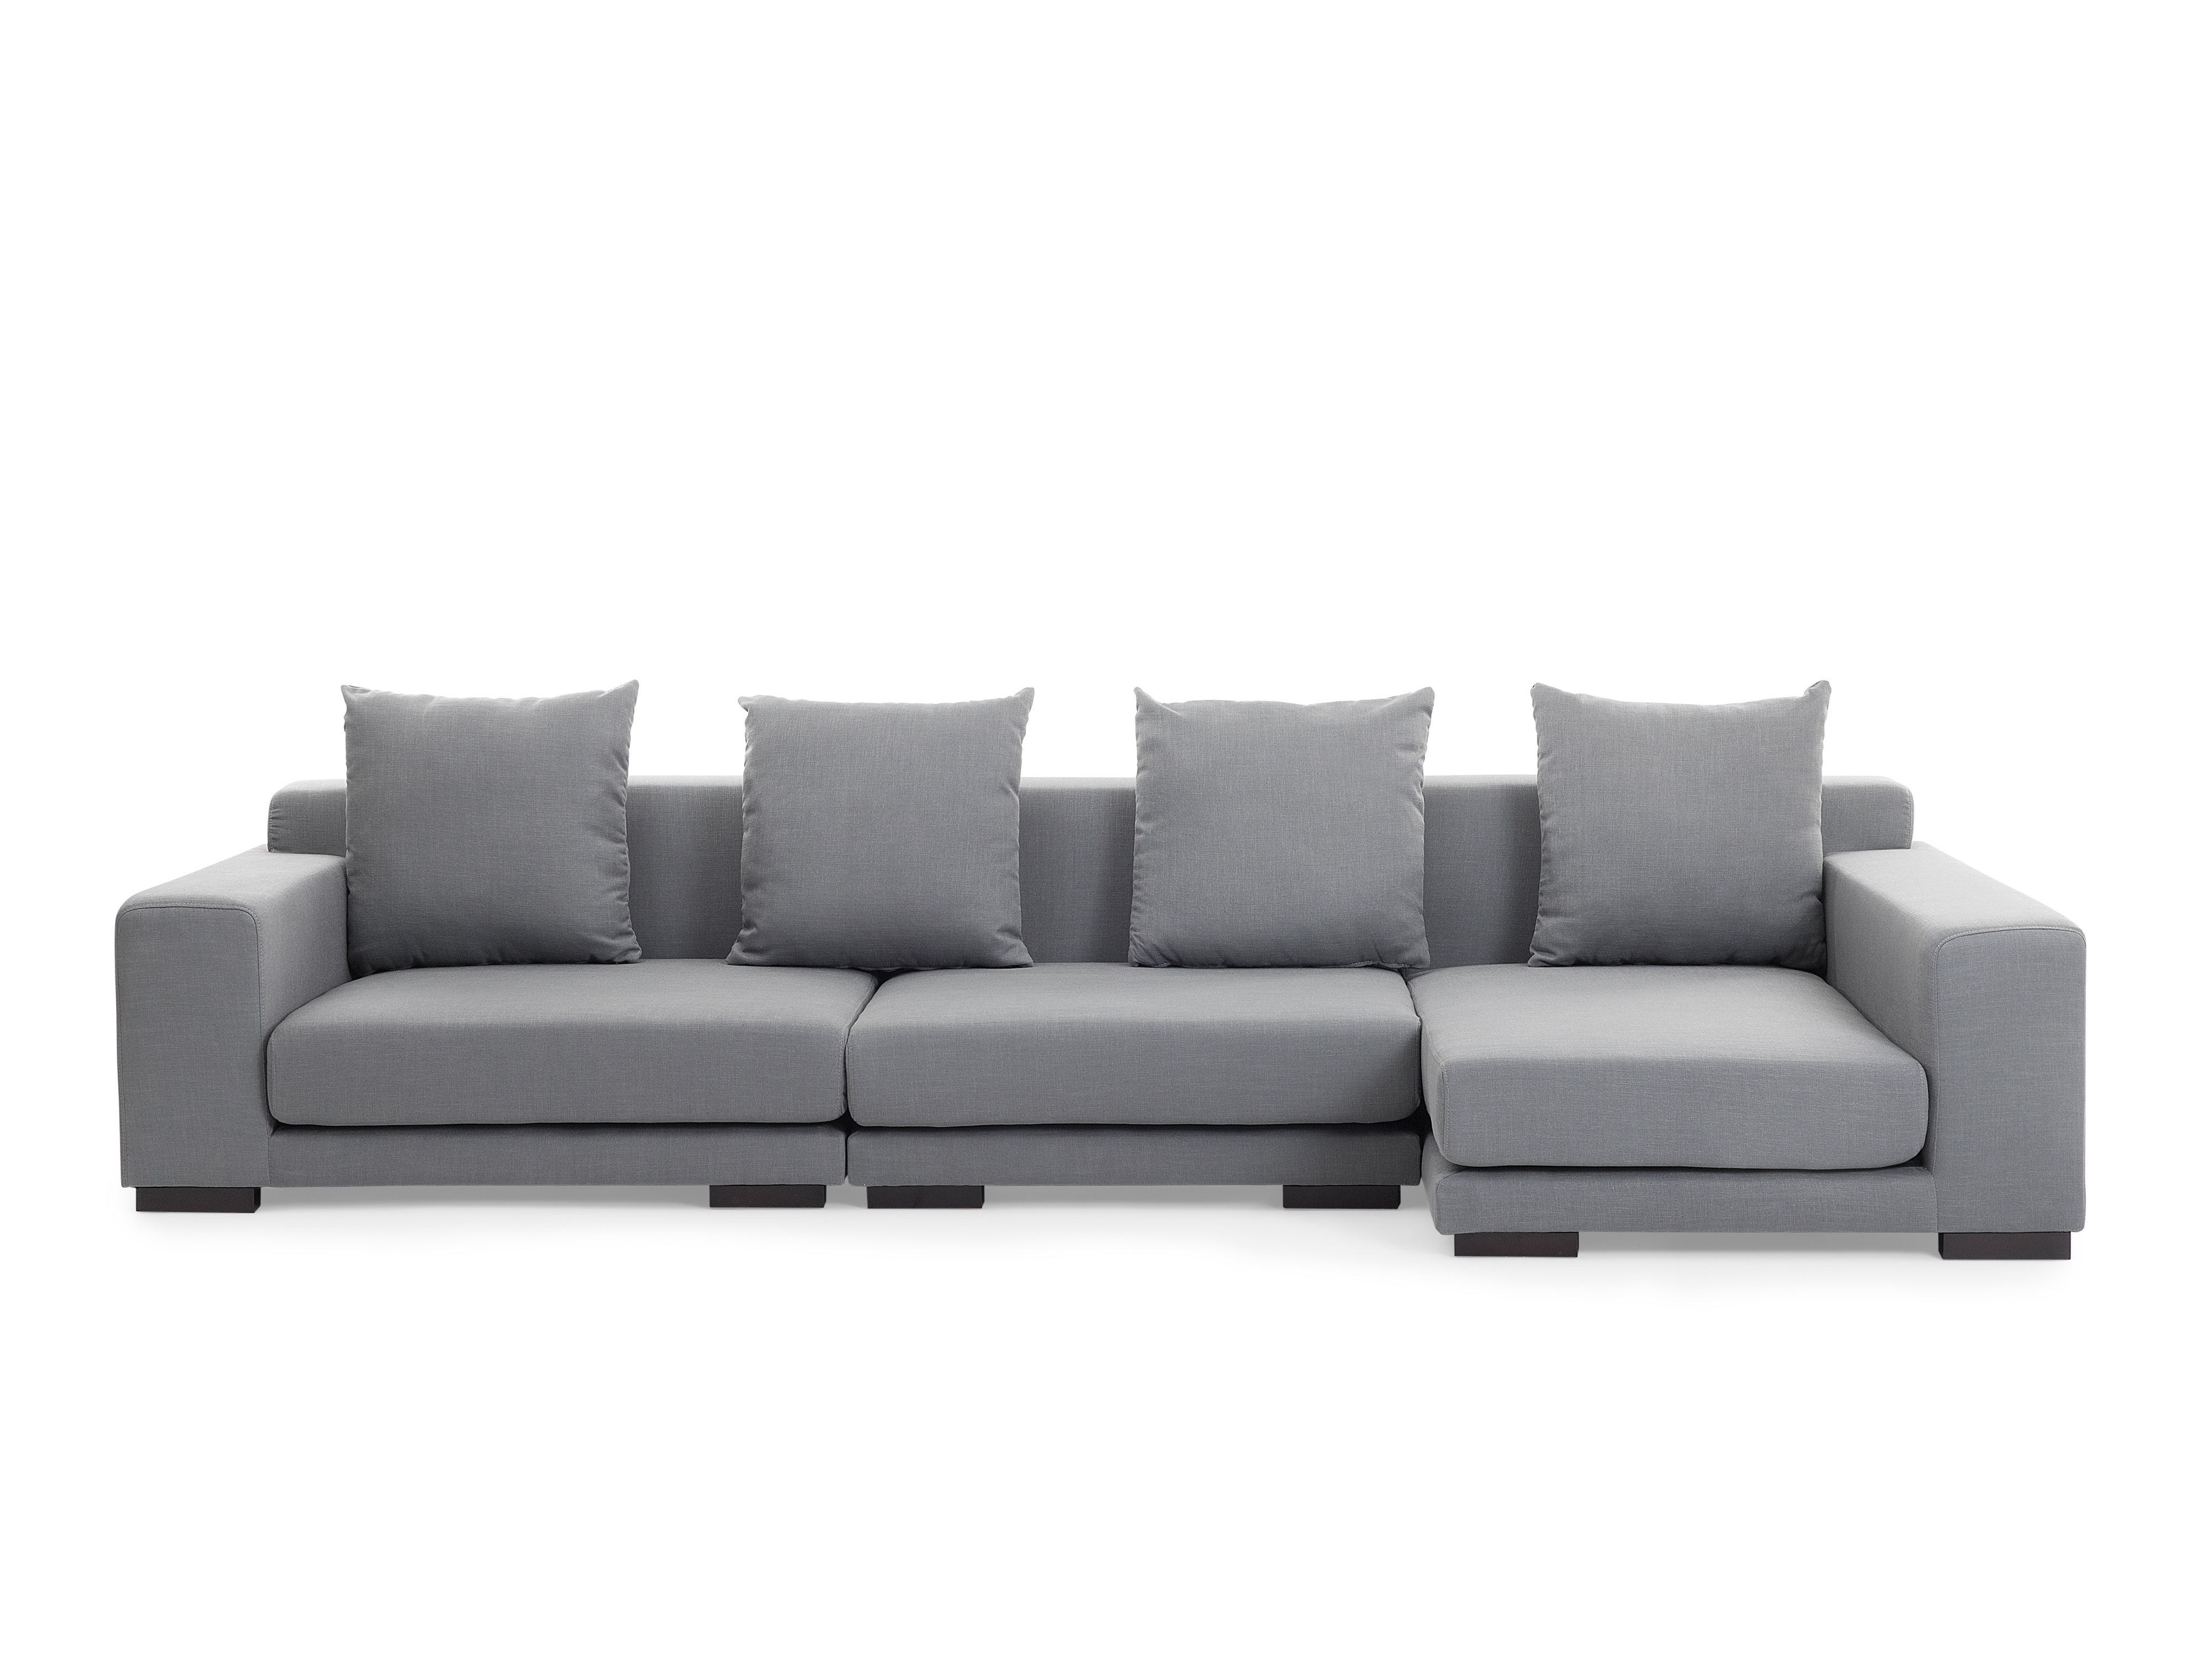 Beliani For Most Up To Date Modular Corner Sofas (View 1 of 15)